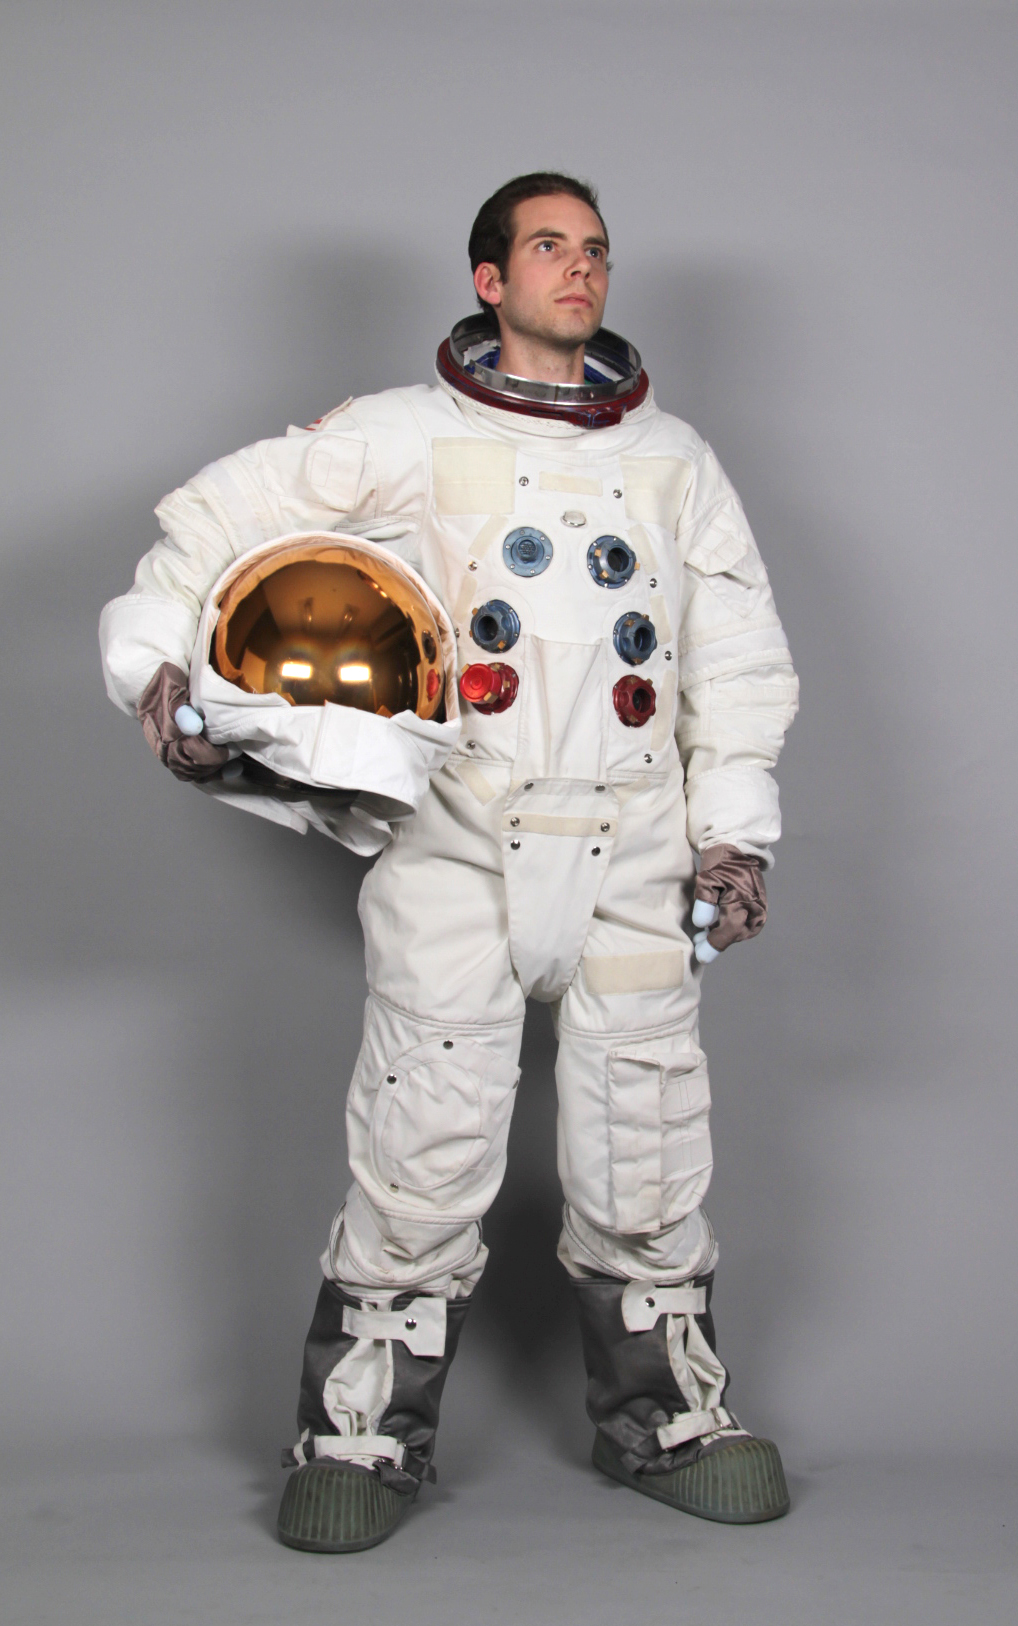 Because this is what you do when you are given an accurate Apollo replica spacesuit for a week.